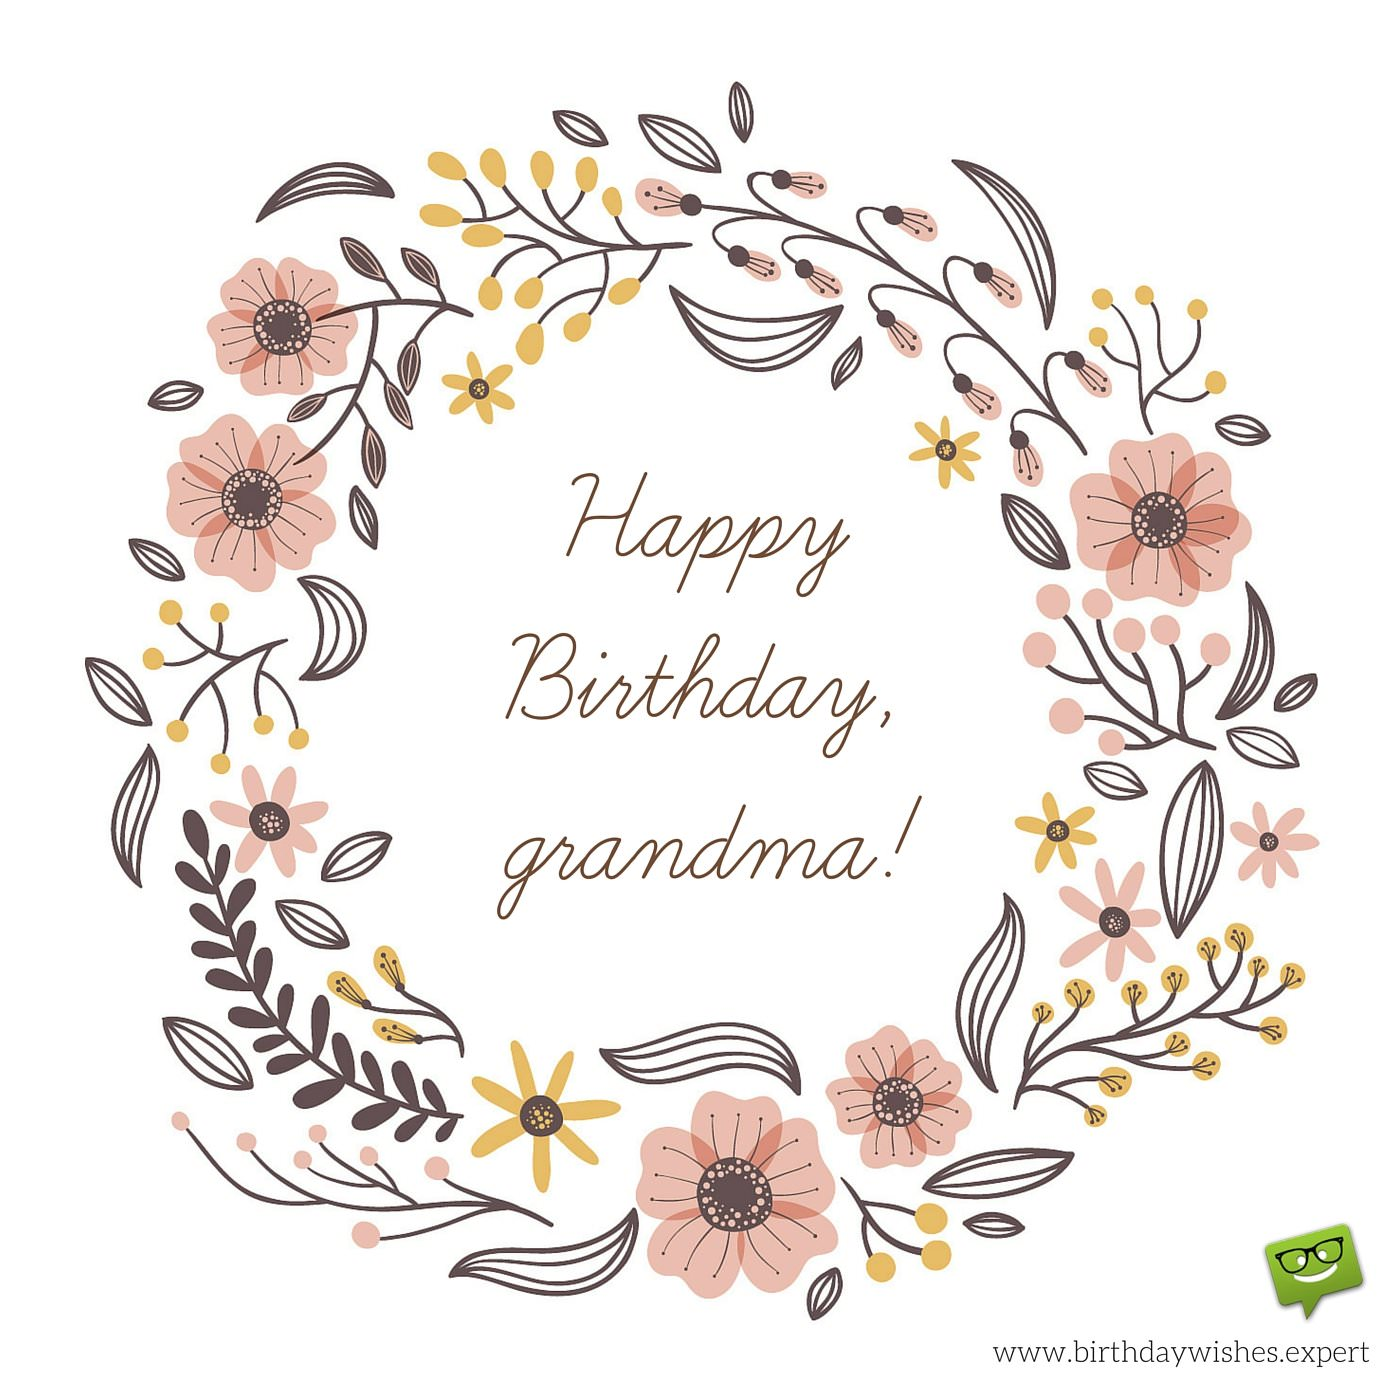 Happy Birthday Grandma On Image With Hand Drawn Flowers